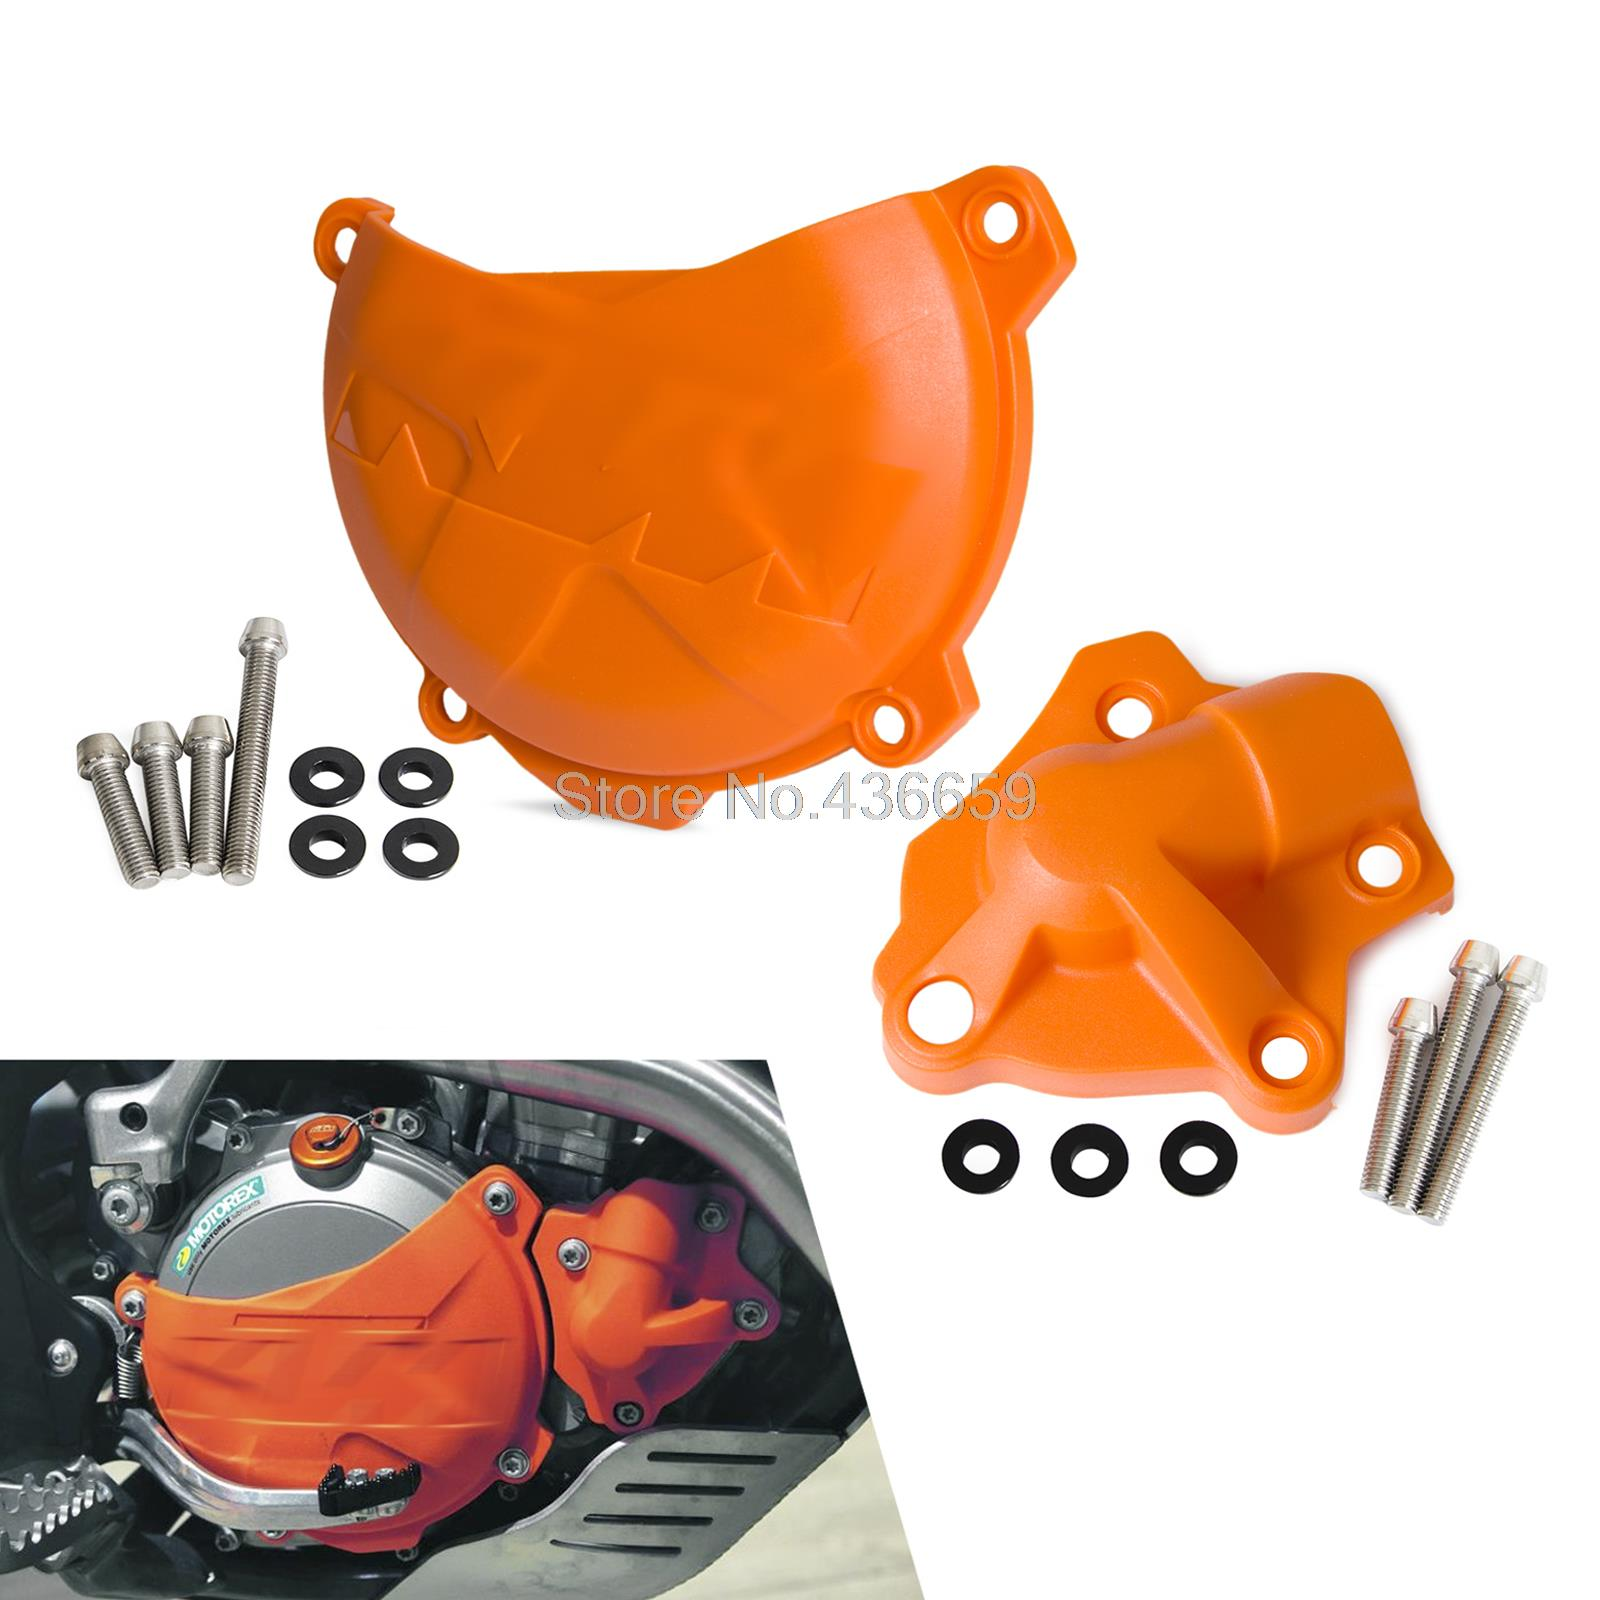 Clutch Cover/Water Pump Cover Protector for KTM 350 XCF-W SIX DAYS 2014-2015 2016